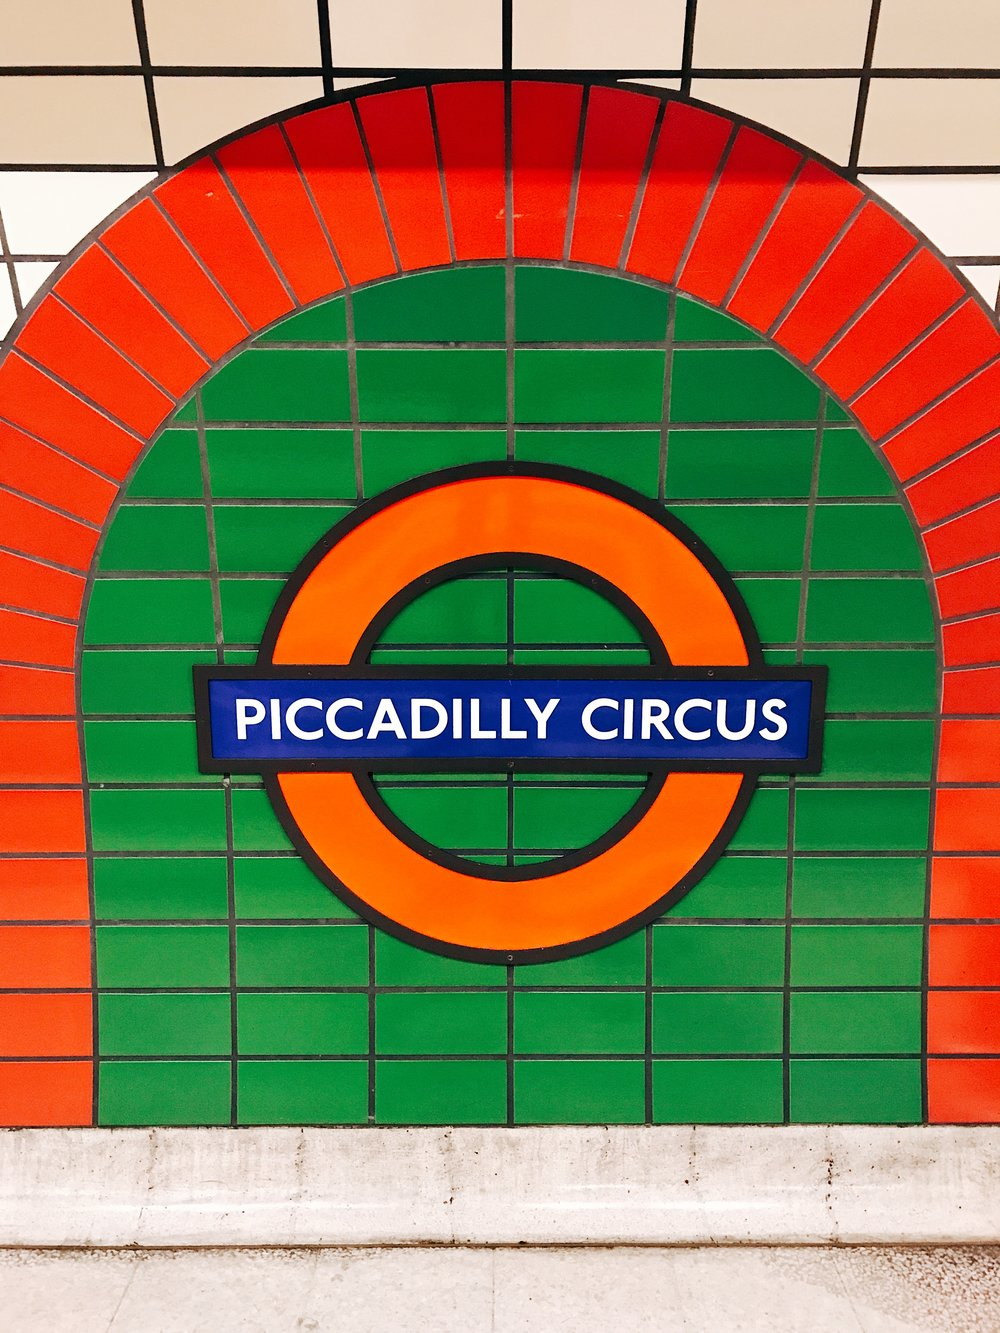 Image: Reasons to Visit London - Many Images to Inspire You to Visit London - Picadilly Circus